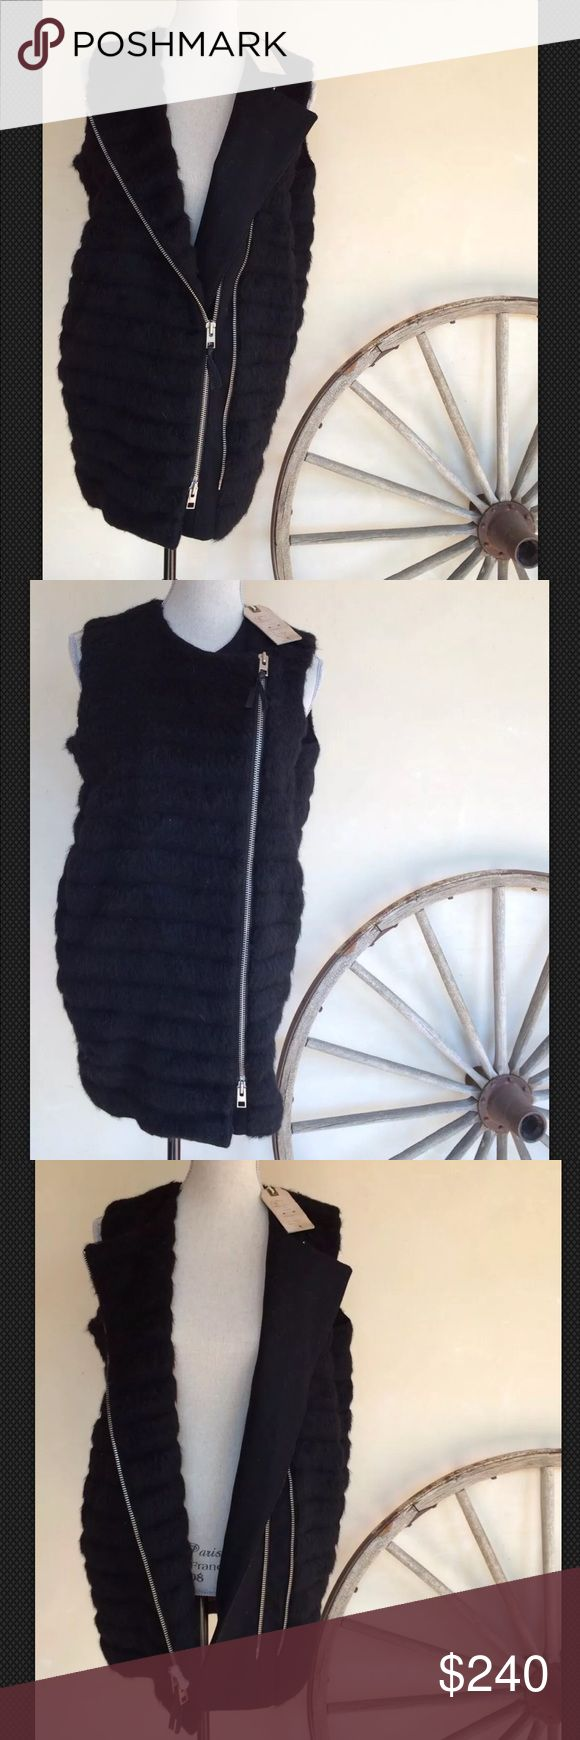 ALL SAINTS Alpaca Wool Moto Jacket Vest NWT $490!! ALL SAINTS Elize Sleevrless Black Wool & Alpaca Jacket Vest Motorcycle UK 8 US 4 EU NWT.  Originally $490.